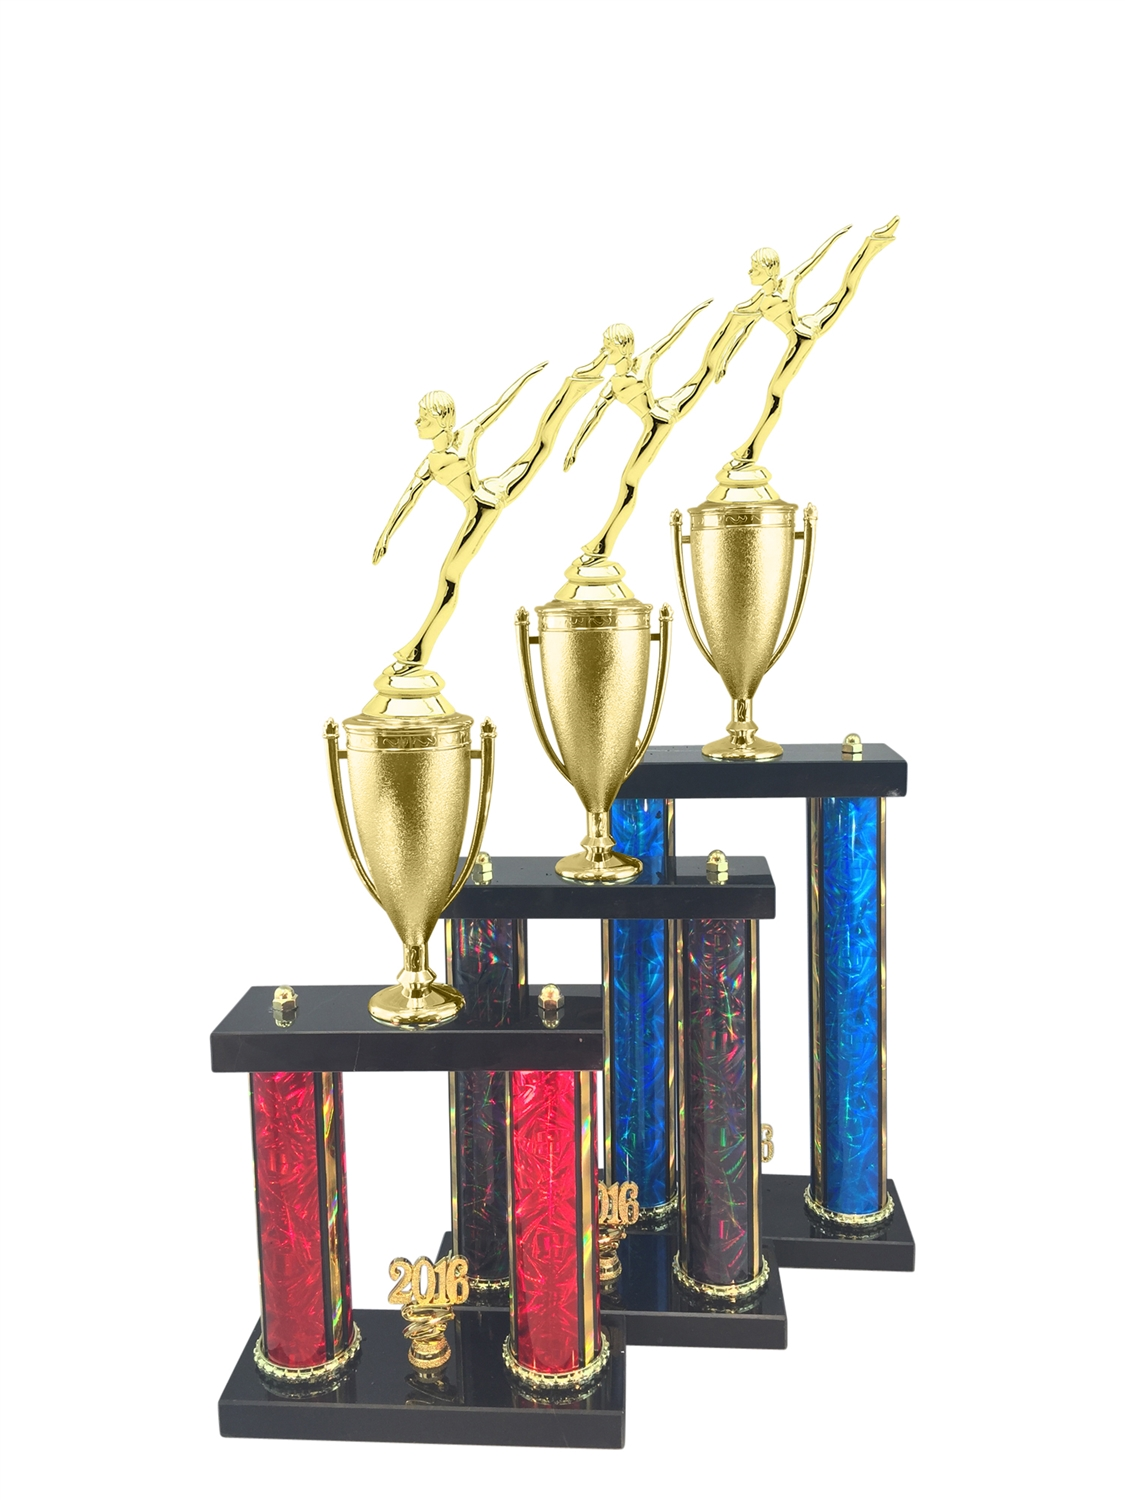 Dance Trophy Available in 11 Color & 3 Size Options